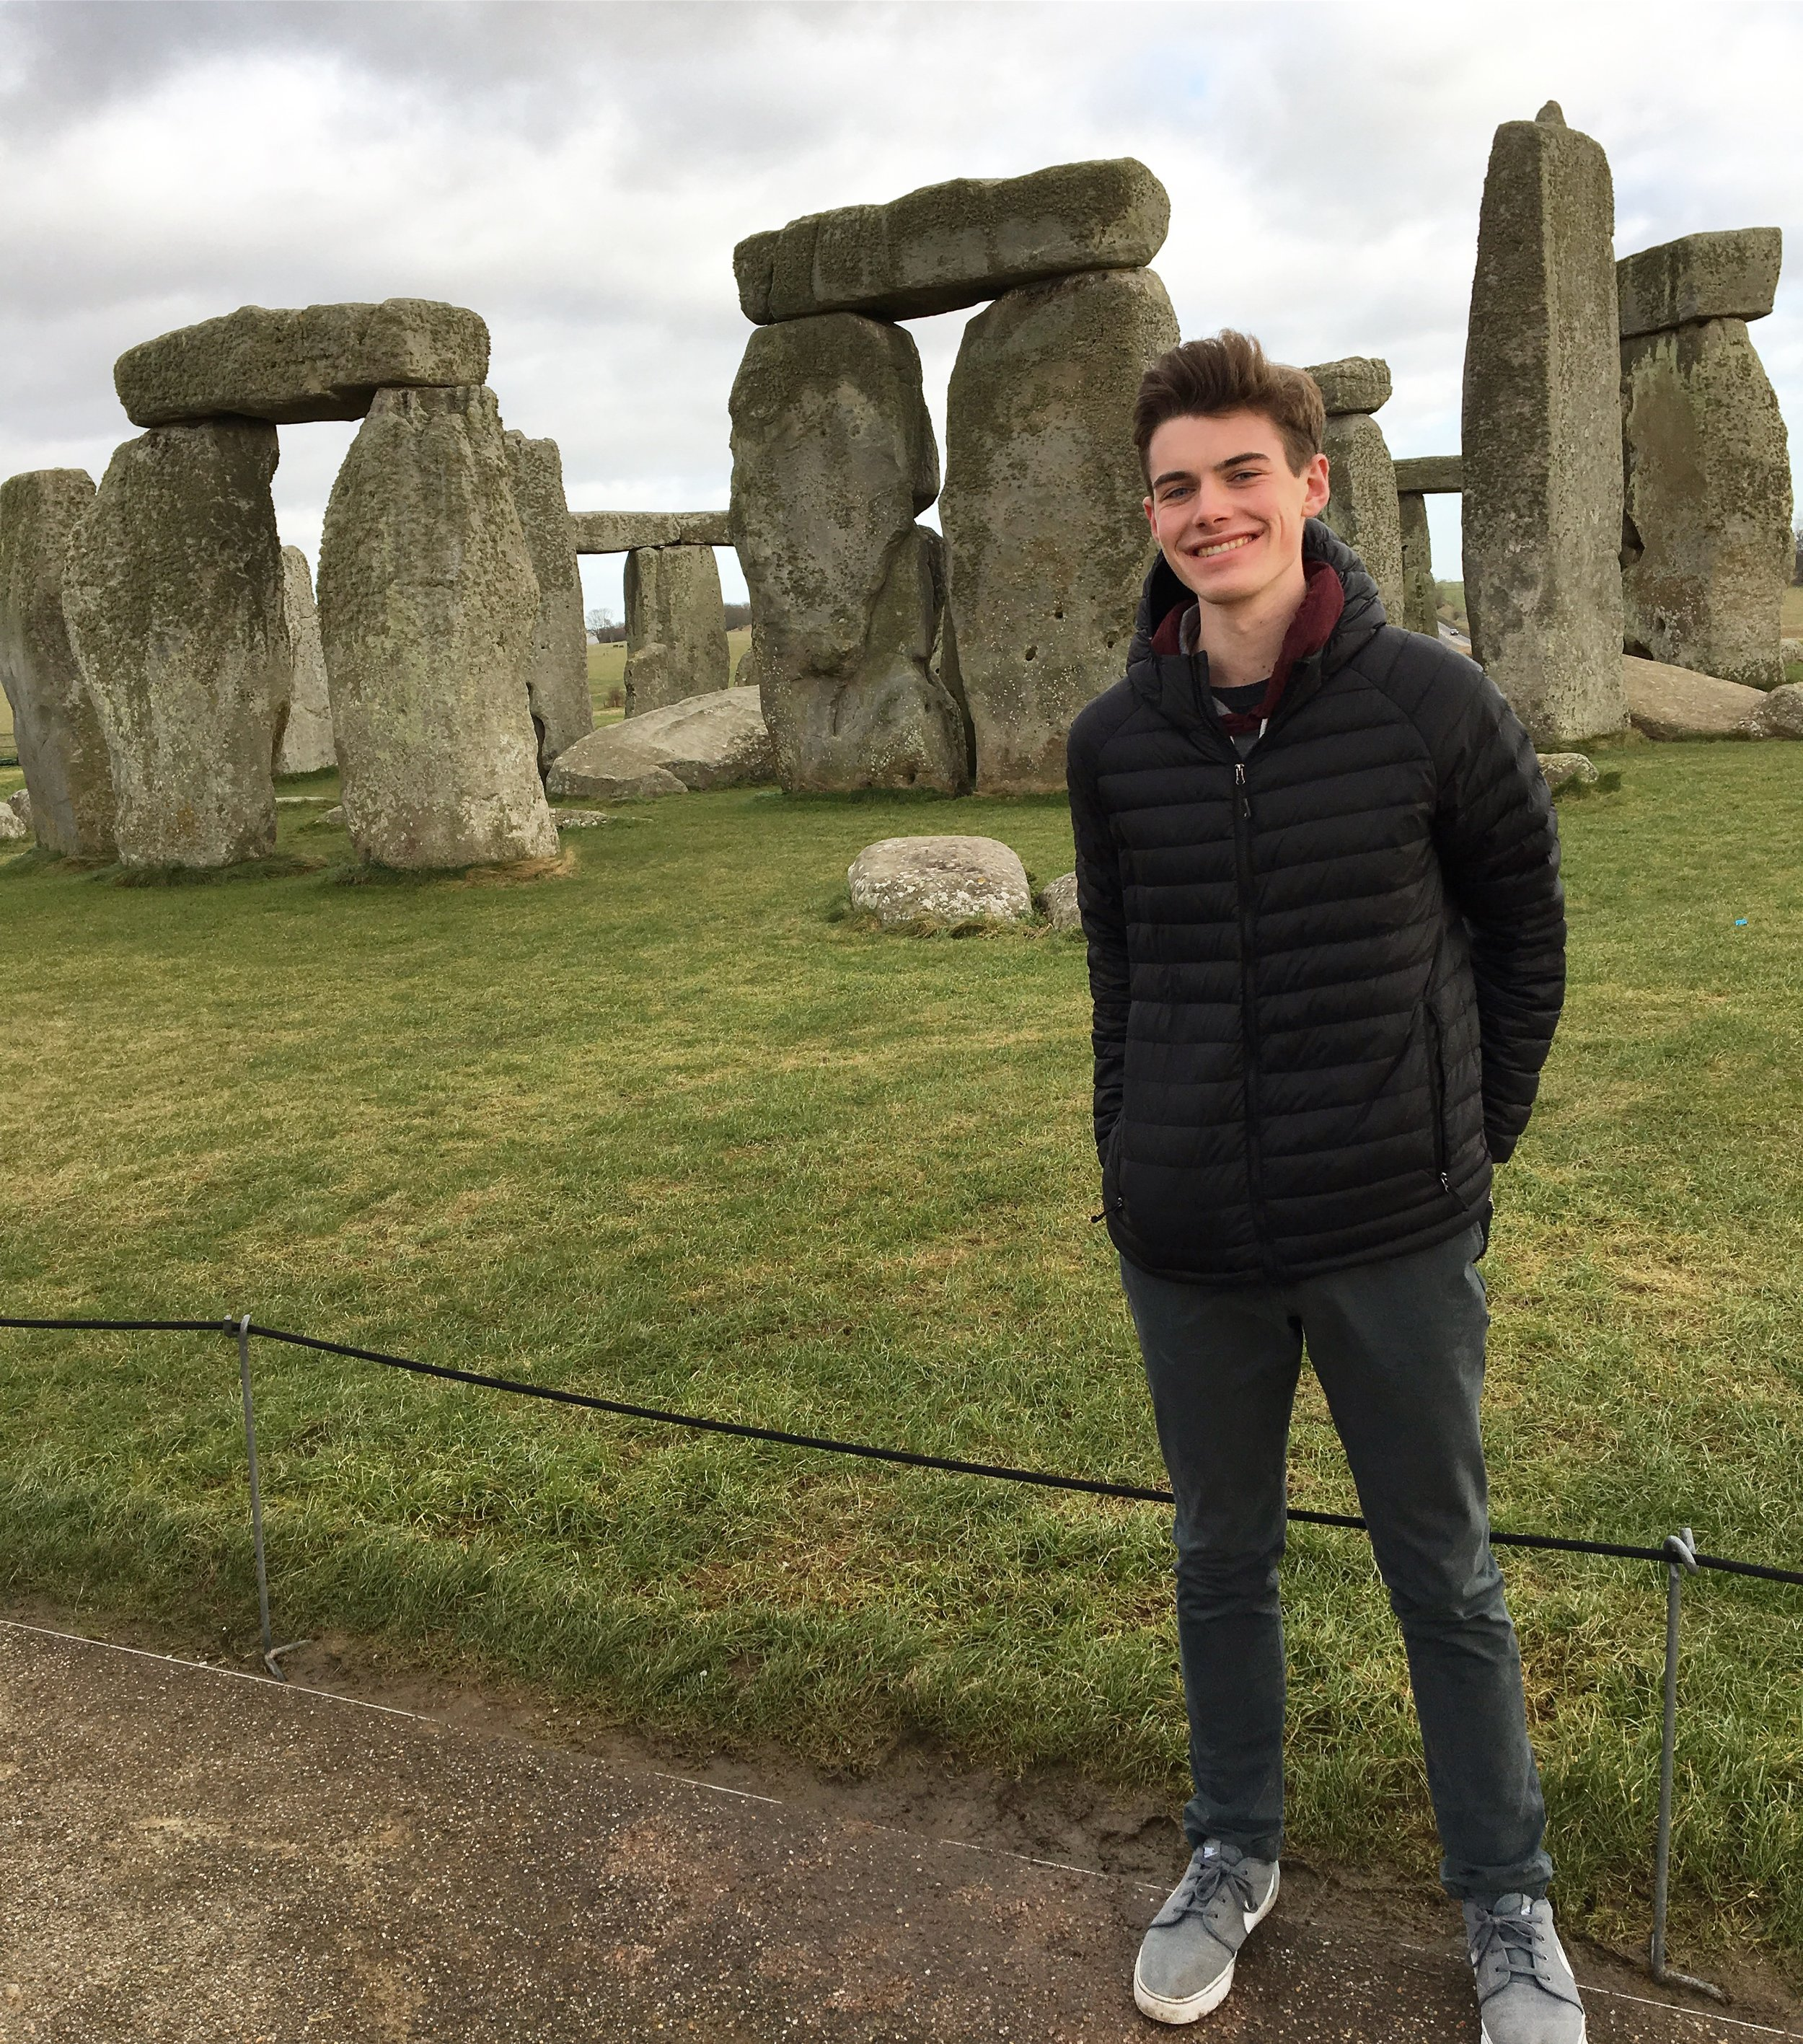 Brian Florenzo standing in front of Stonehenge on British Masters of Science Study Abroad Course.